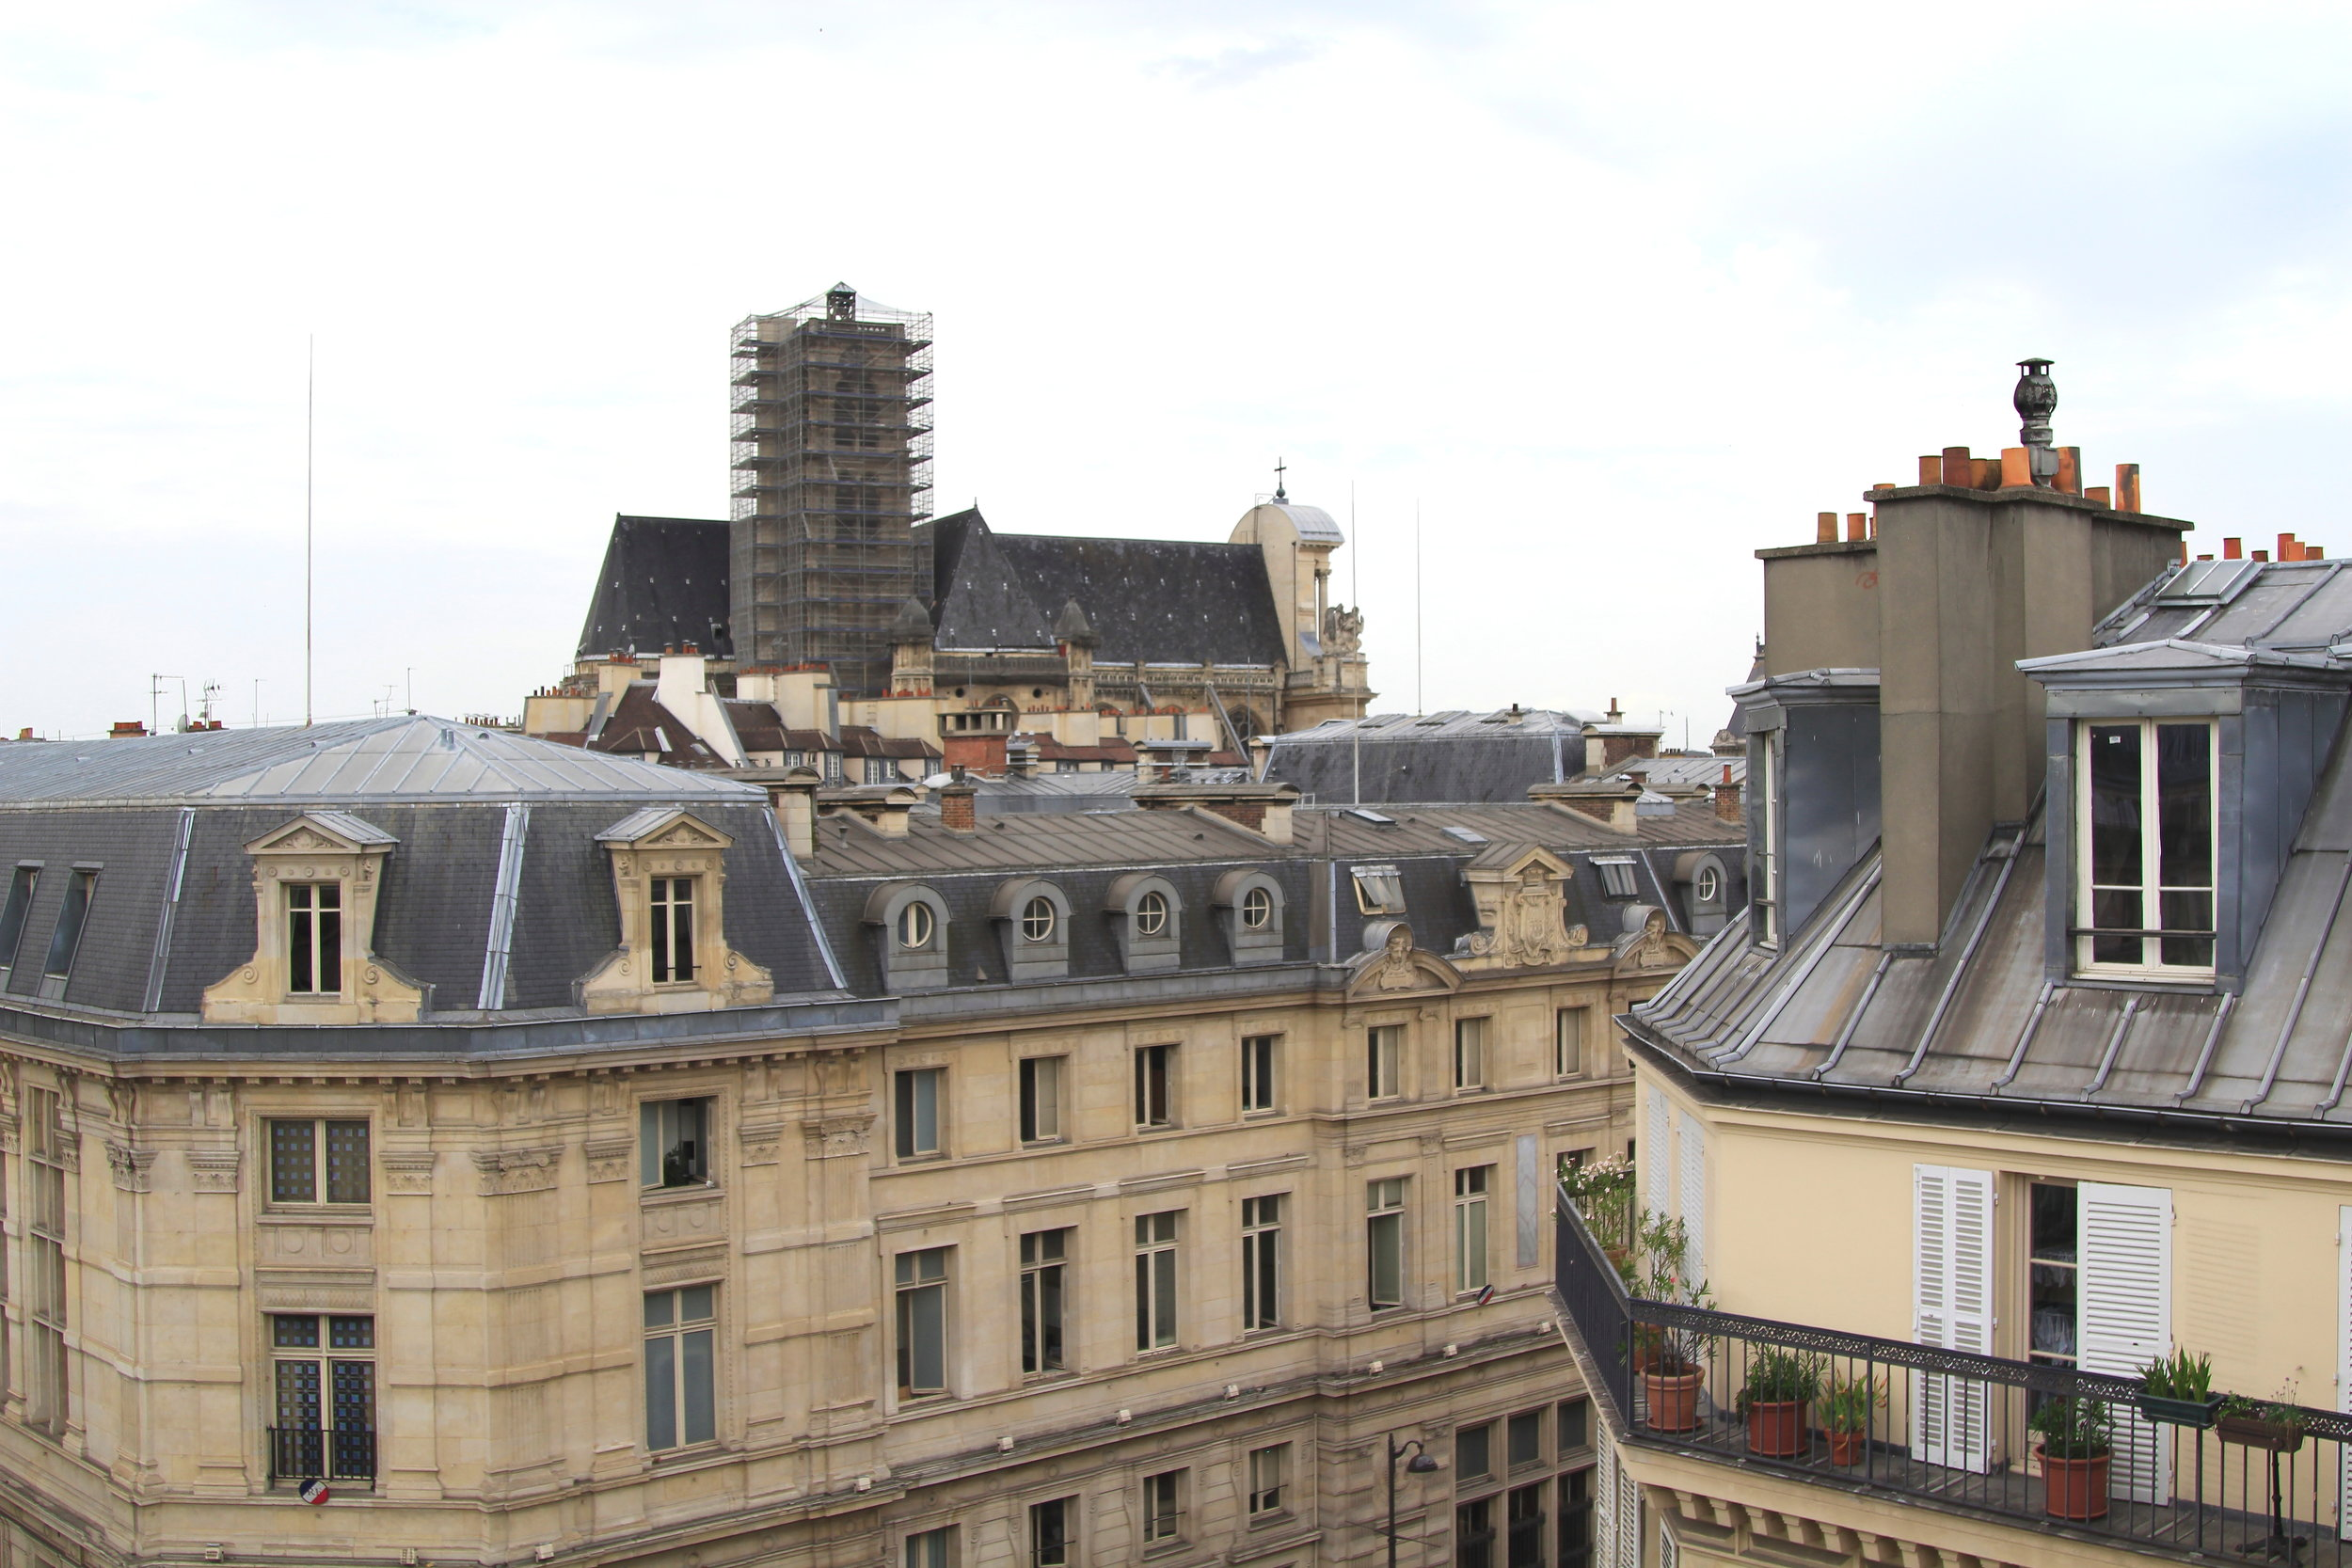 Paris Rooftops in the Marais District